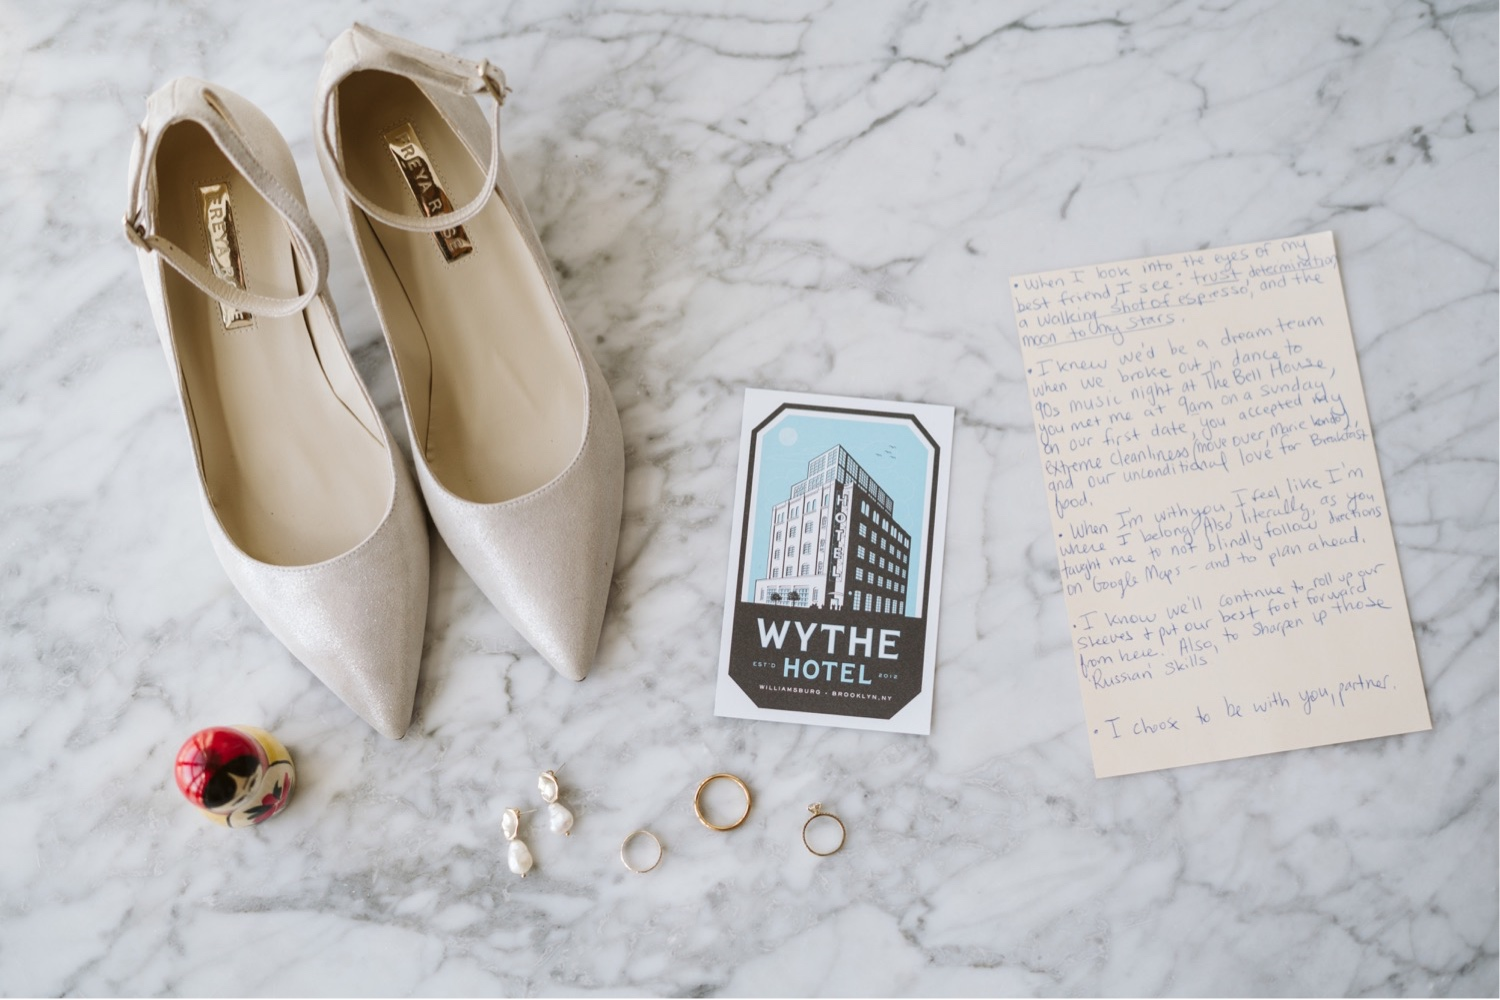 Closeup of the Freya Rose London wedding shoes laid out with wedding details like vows, wedding rings, and the wythe hotel welcome card